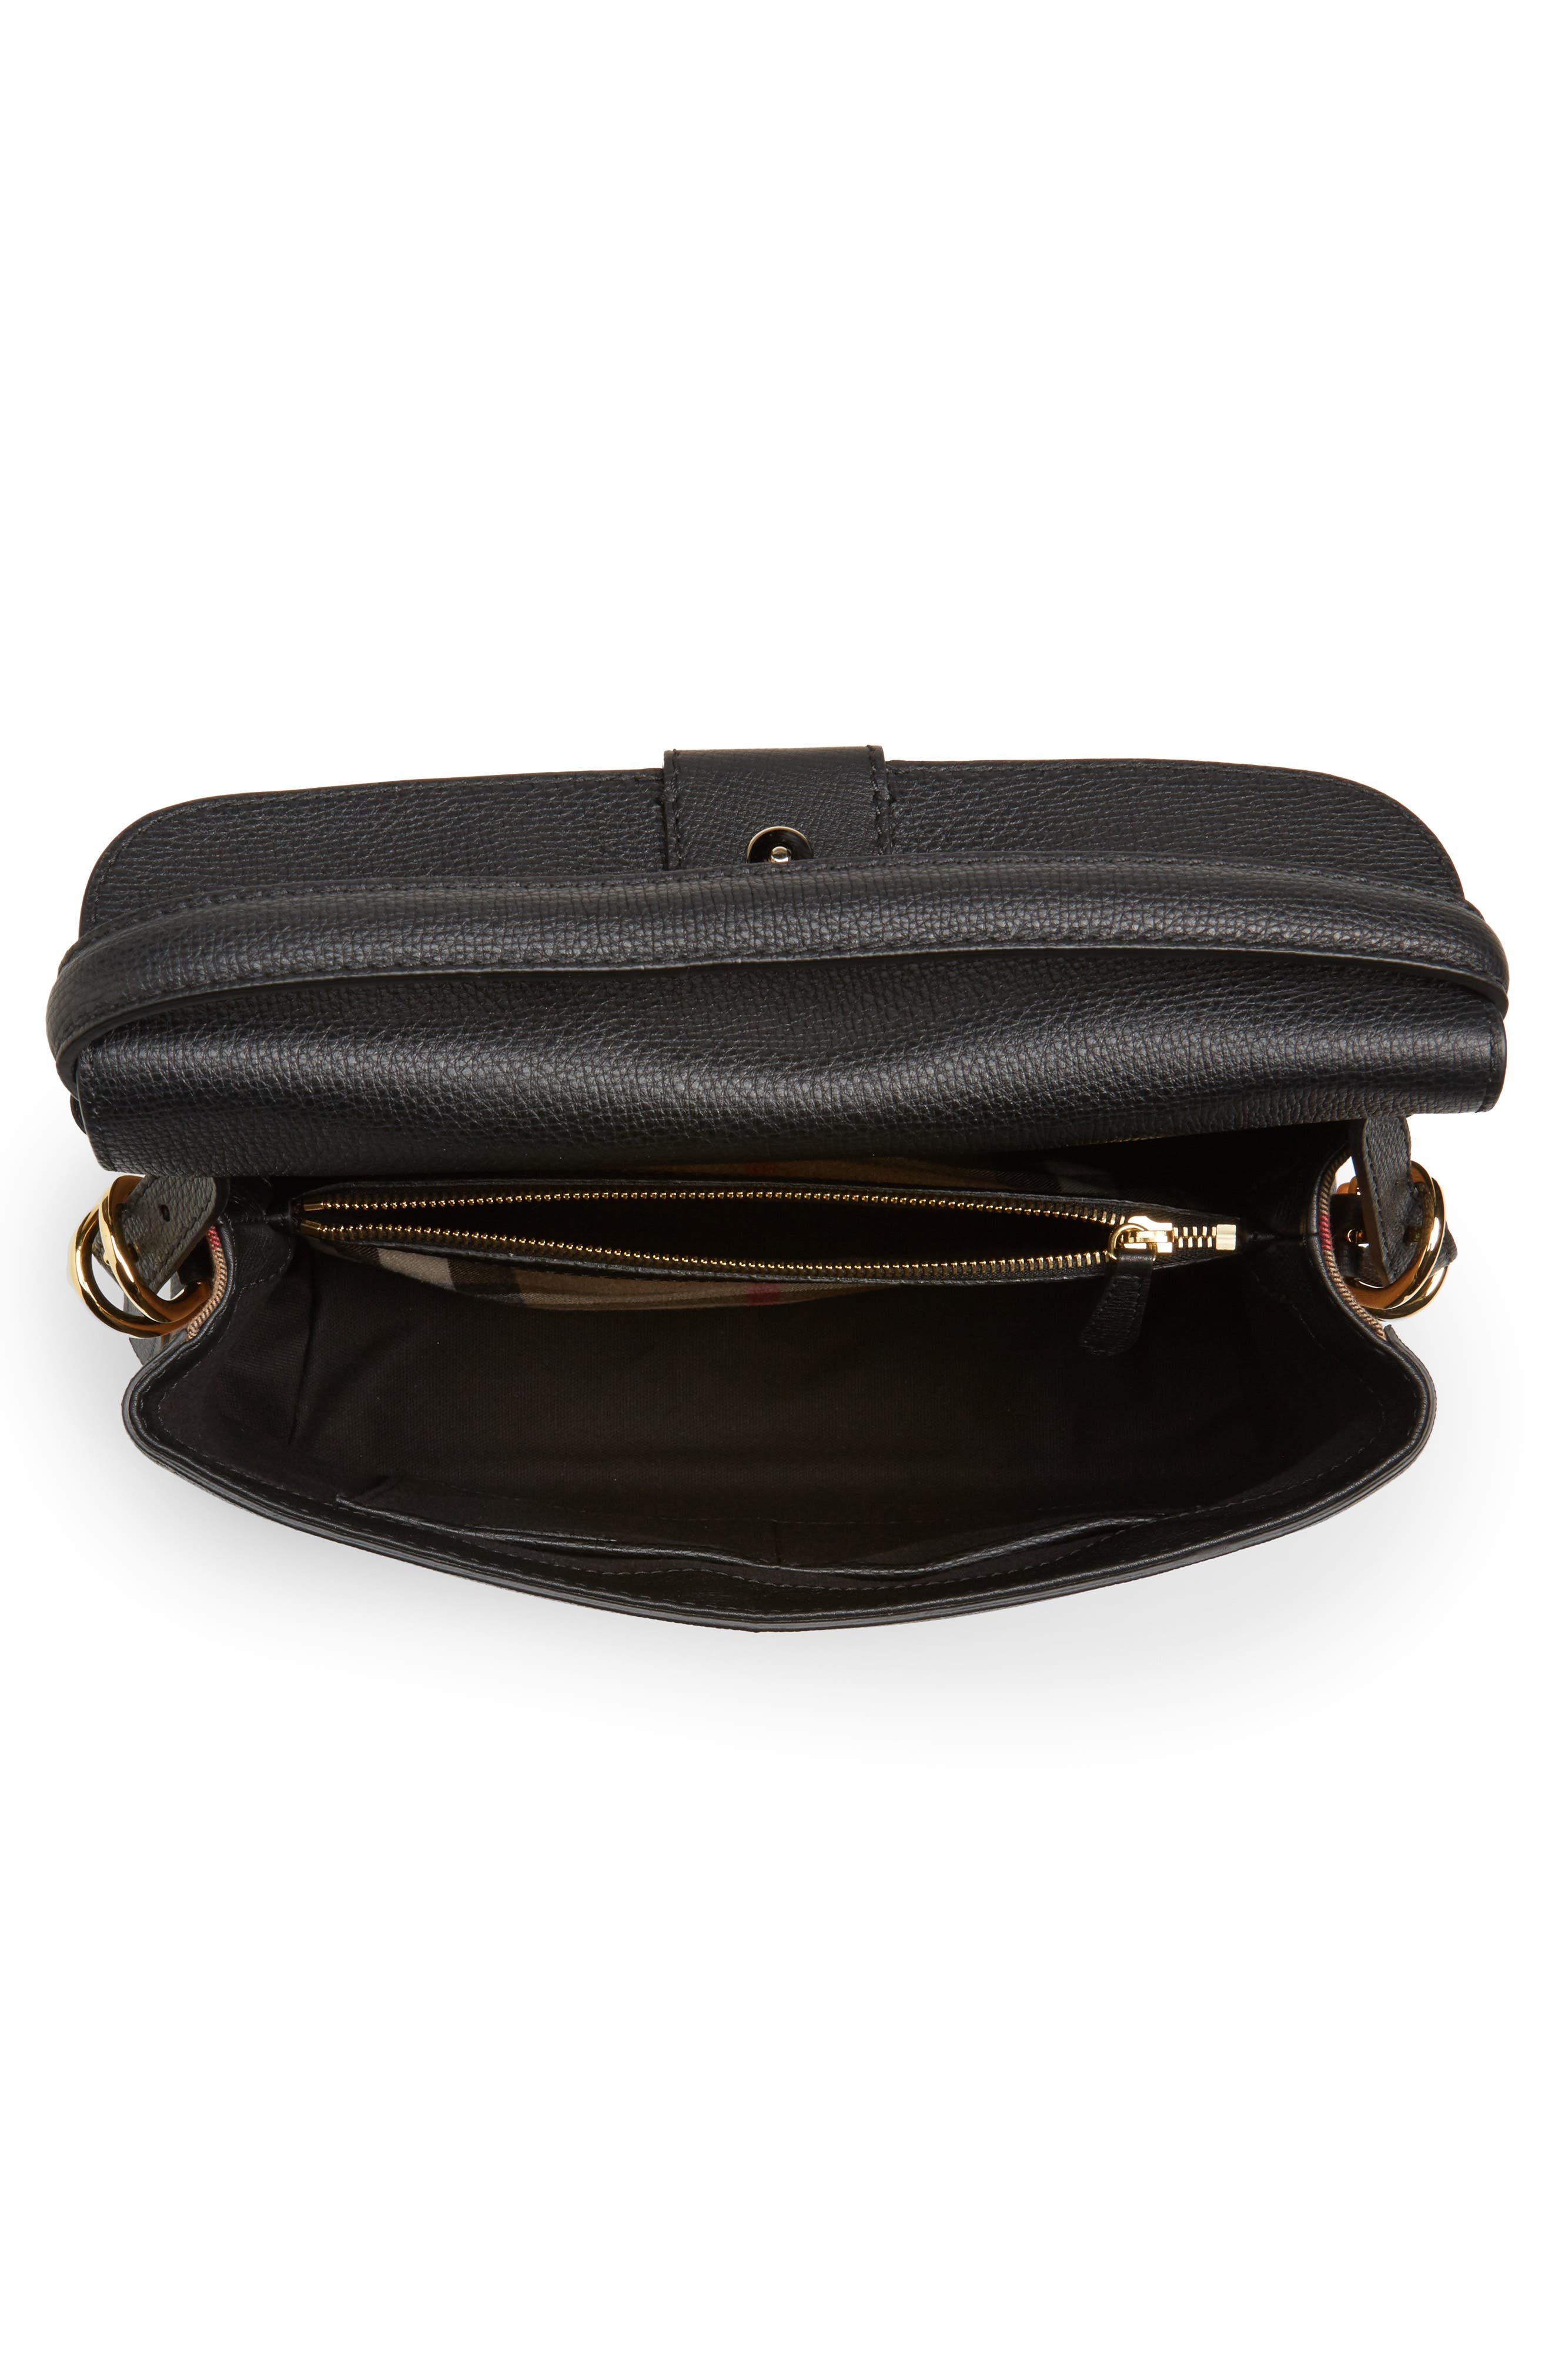 Medium Camberley Leather & House Check Top Handle Satchel,                             Alternate thumbnail 4, color,                             Black